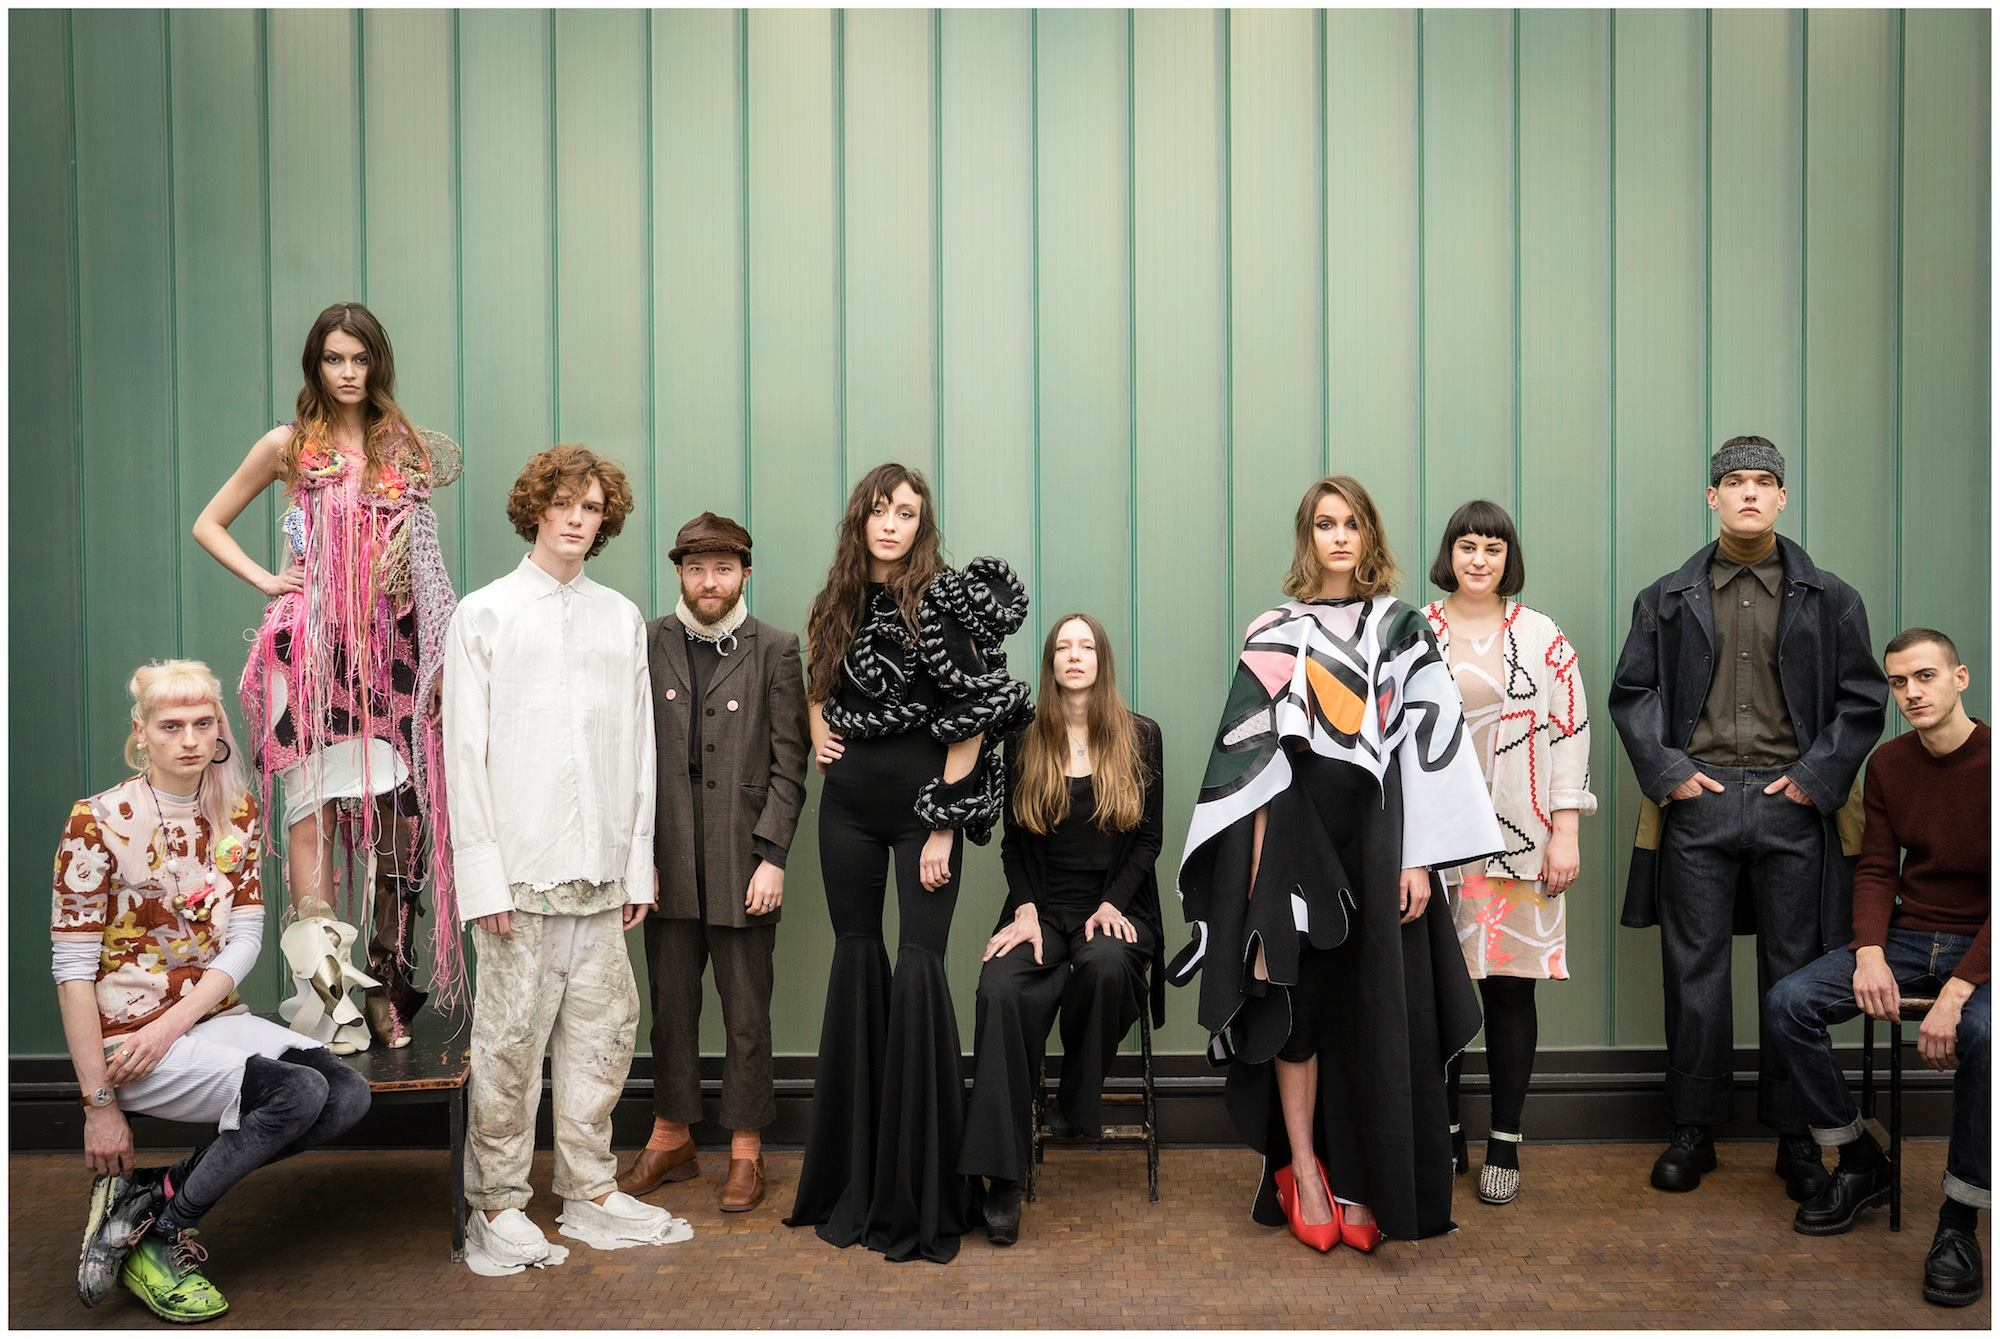 Las pasarelas de los estudiantes de Central Saint Martins en London Fashion Week Fall Winter 2015